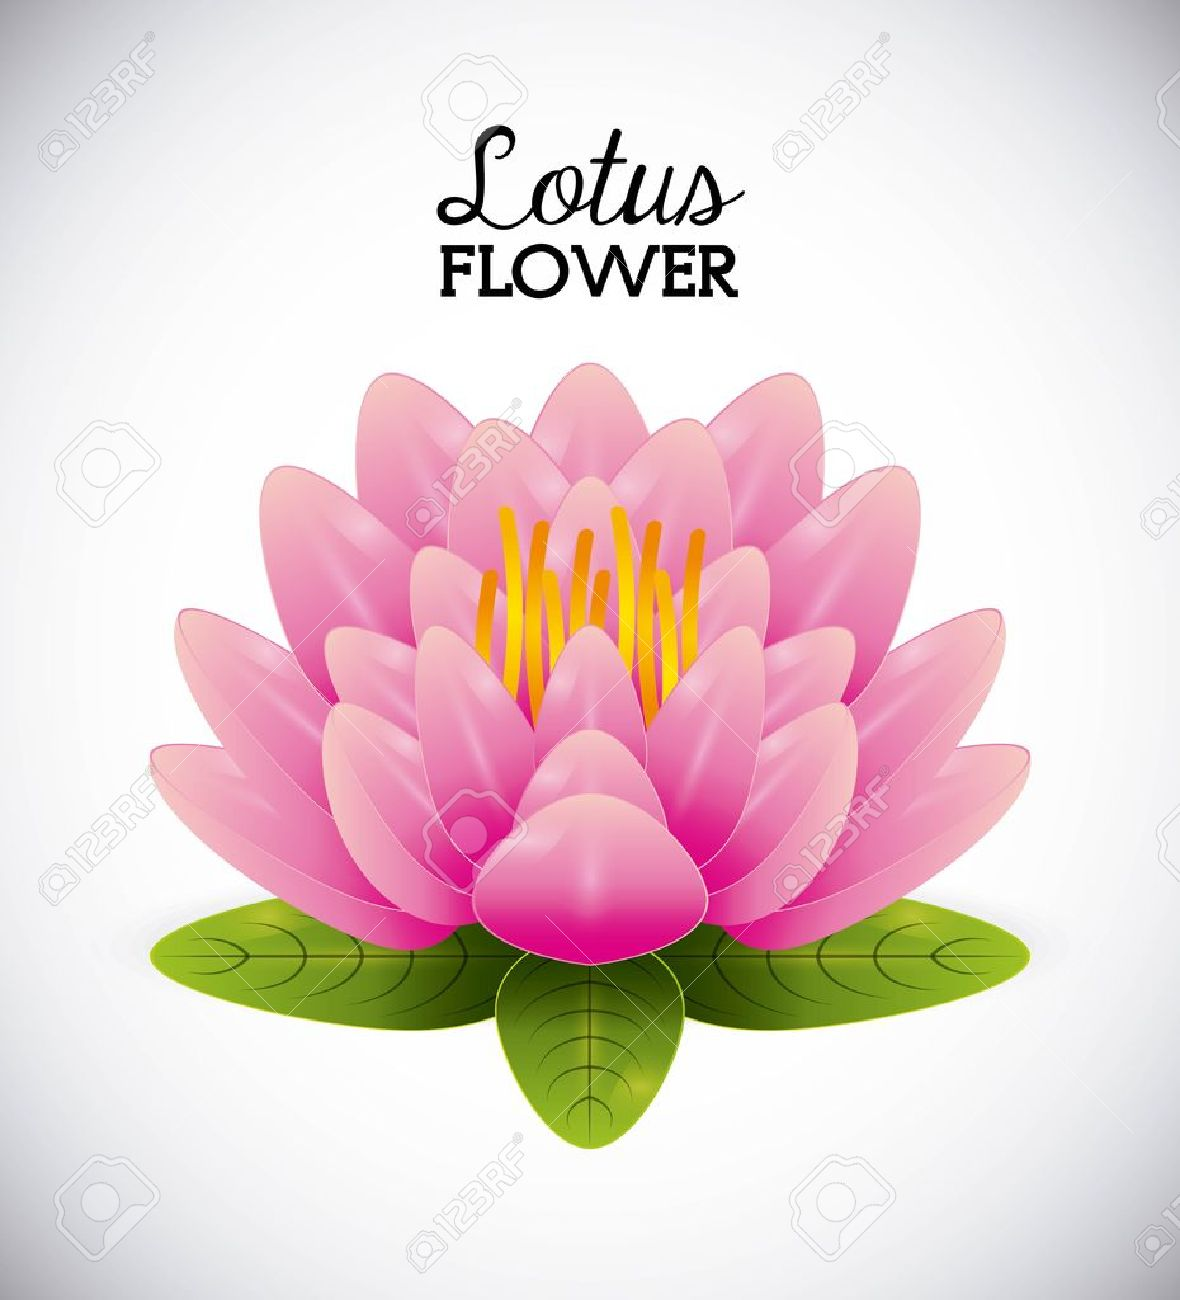 Lotus Flower Design Vector Illustration Graphic Royalty Free